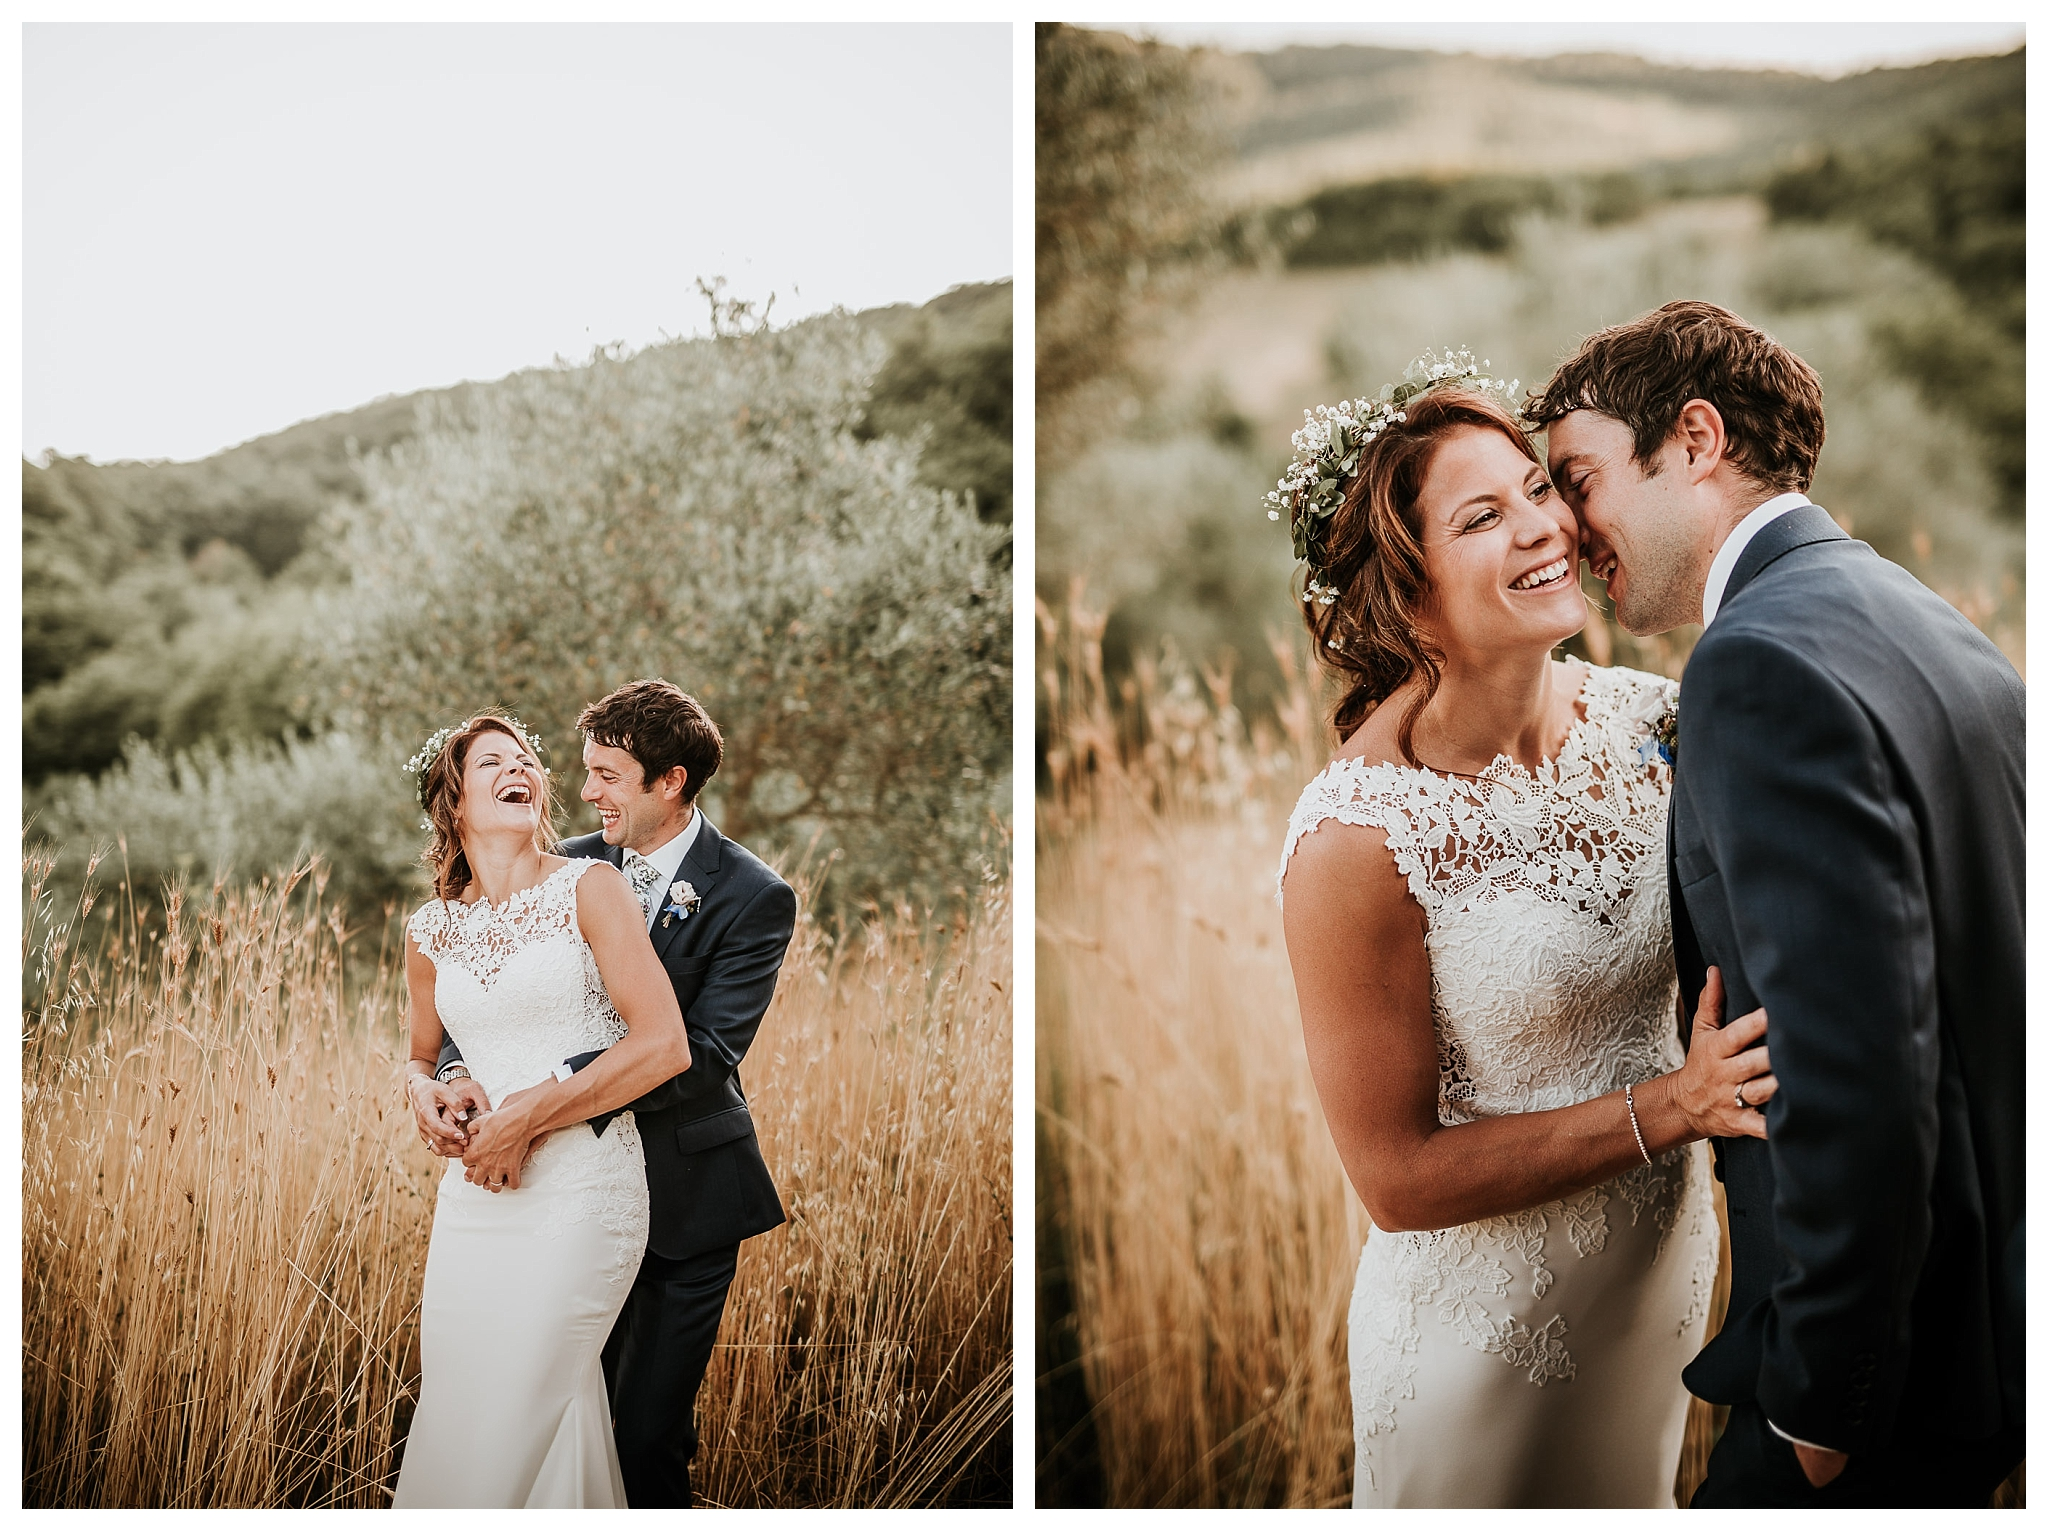 Natural photos for a couple in Umbria, Italy